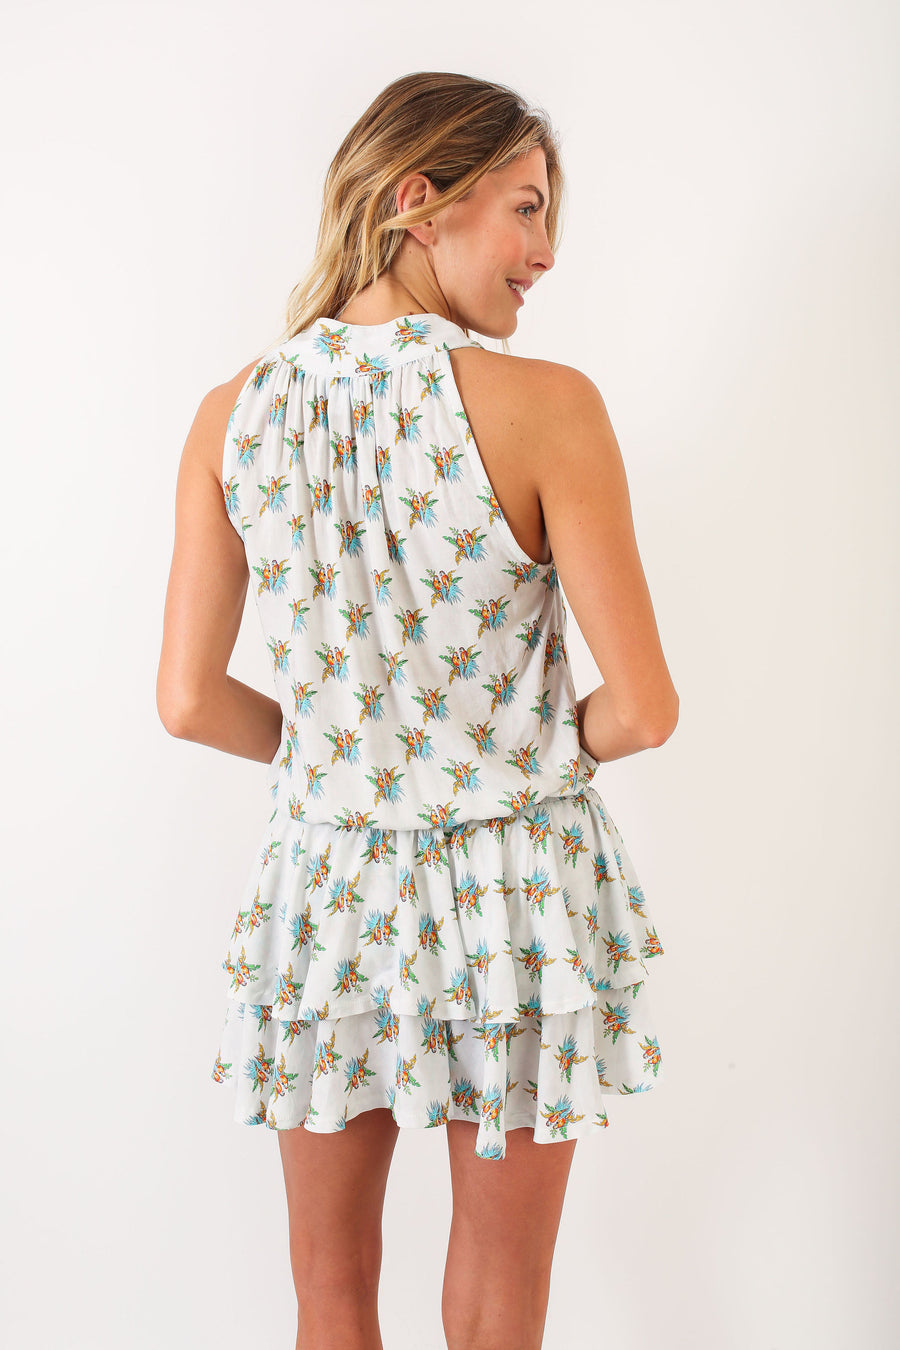 HALEY DRESS PARROT *LIMITED*EDITION*